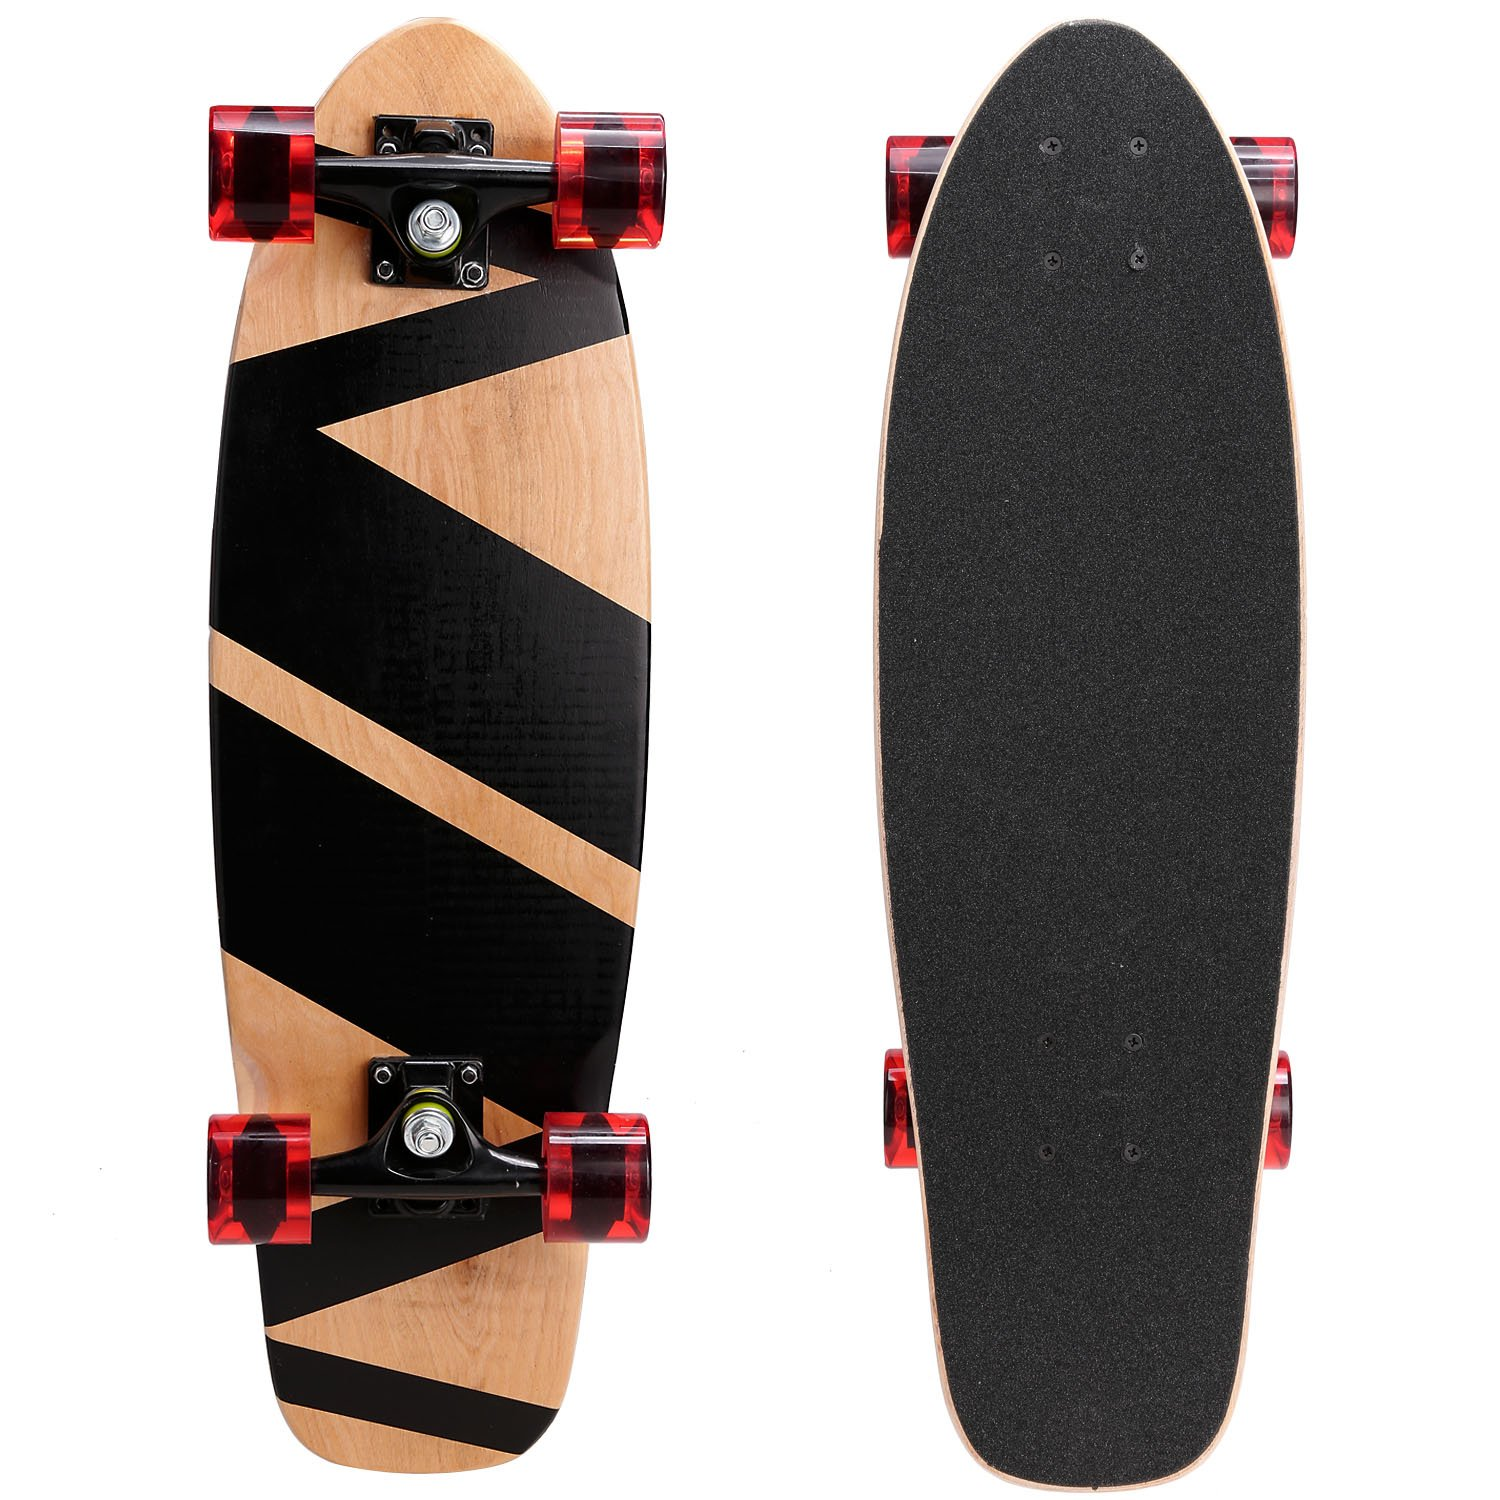 Lululy 27 Inches Cruiser Style Skateboard Complete Outdoors Fun Wooden Deck Skate for Beginners,Kids,Teens,Adults